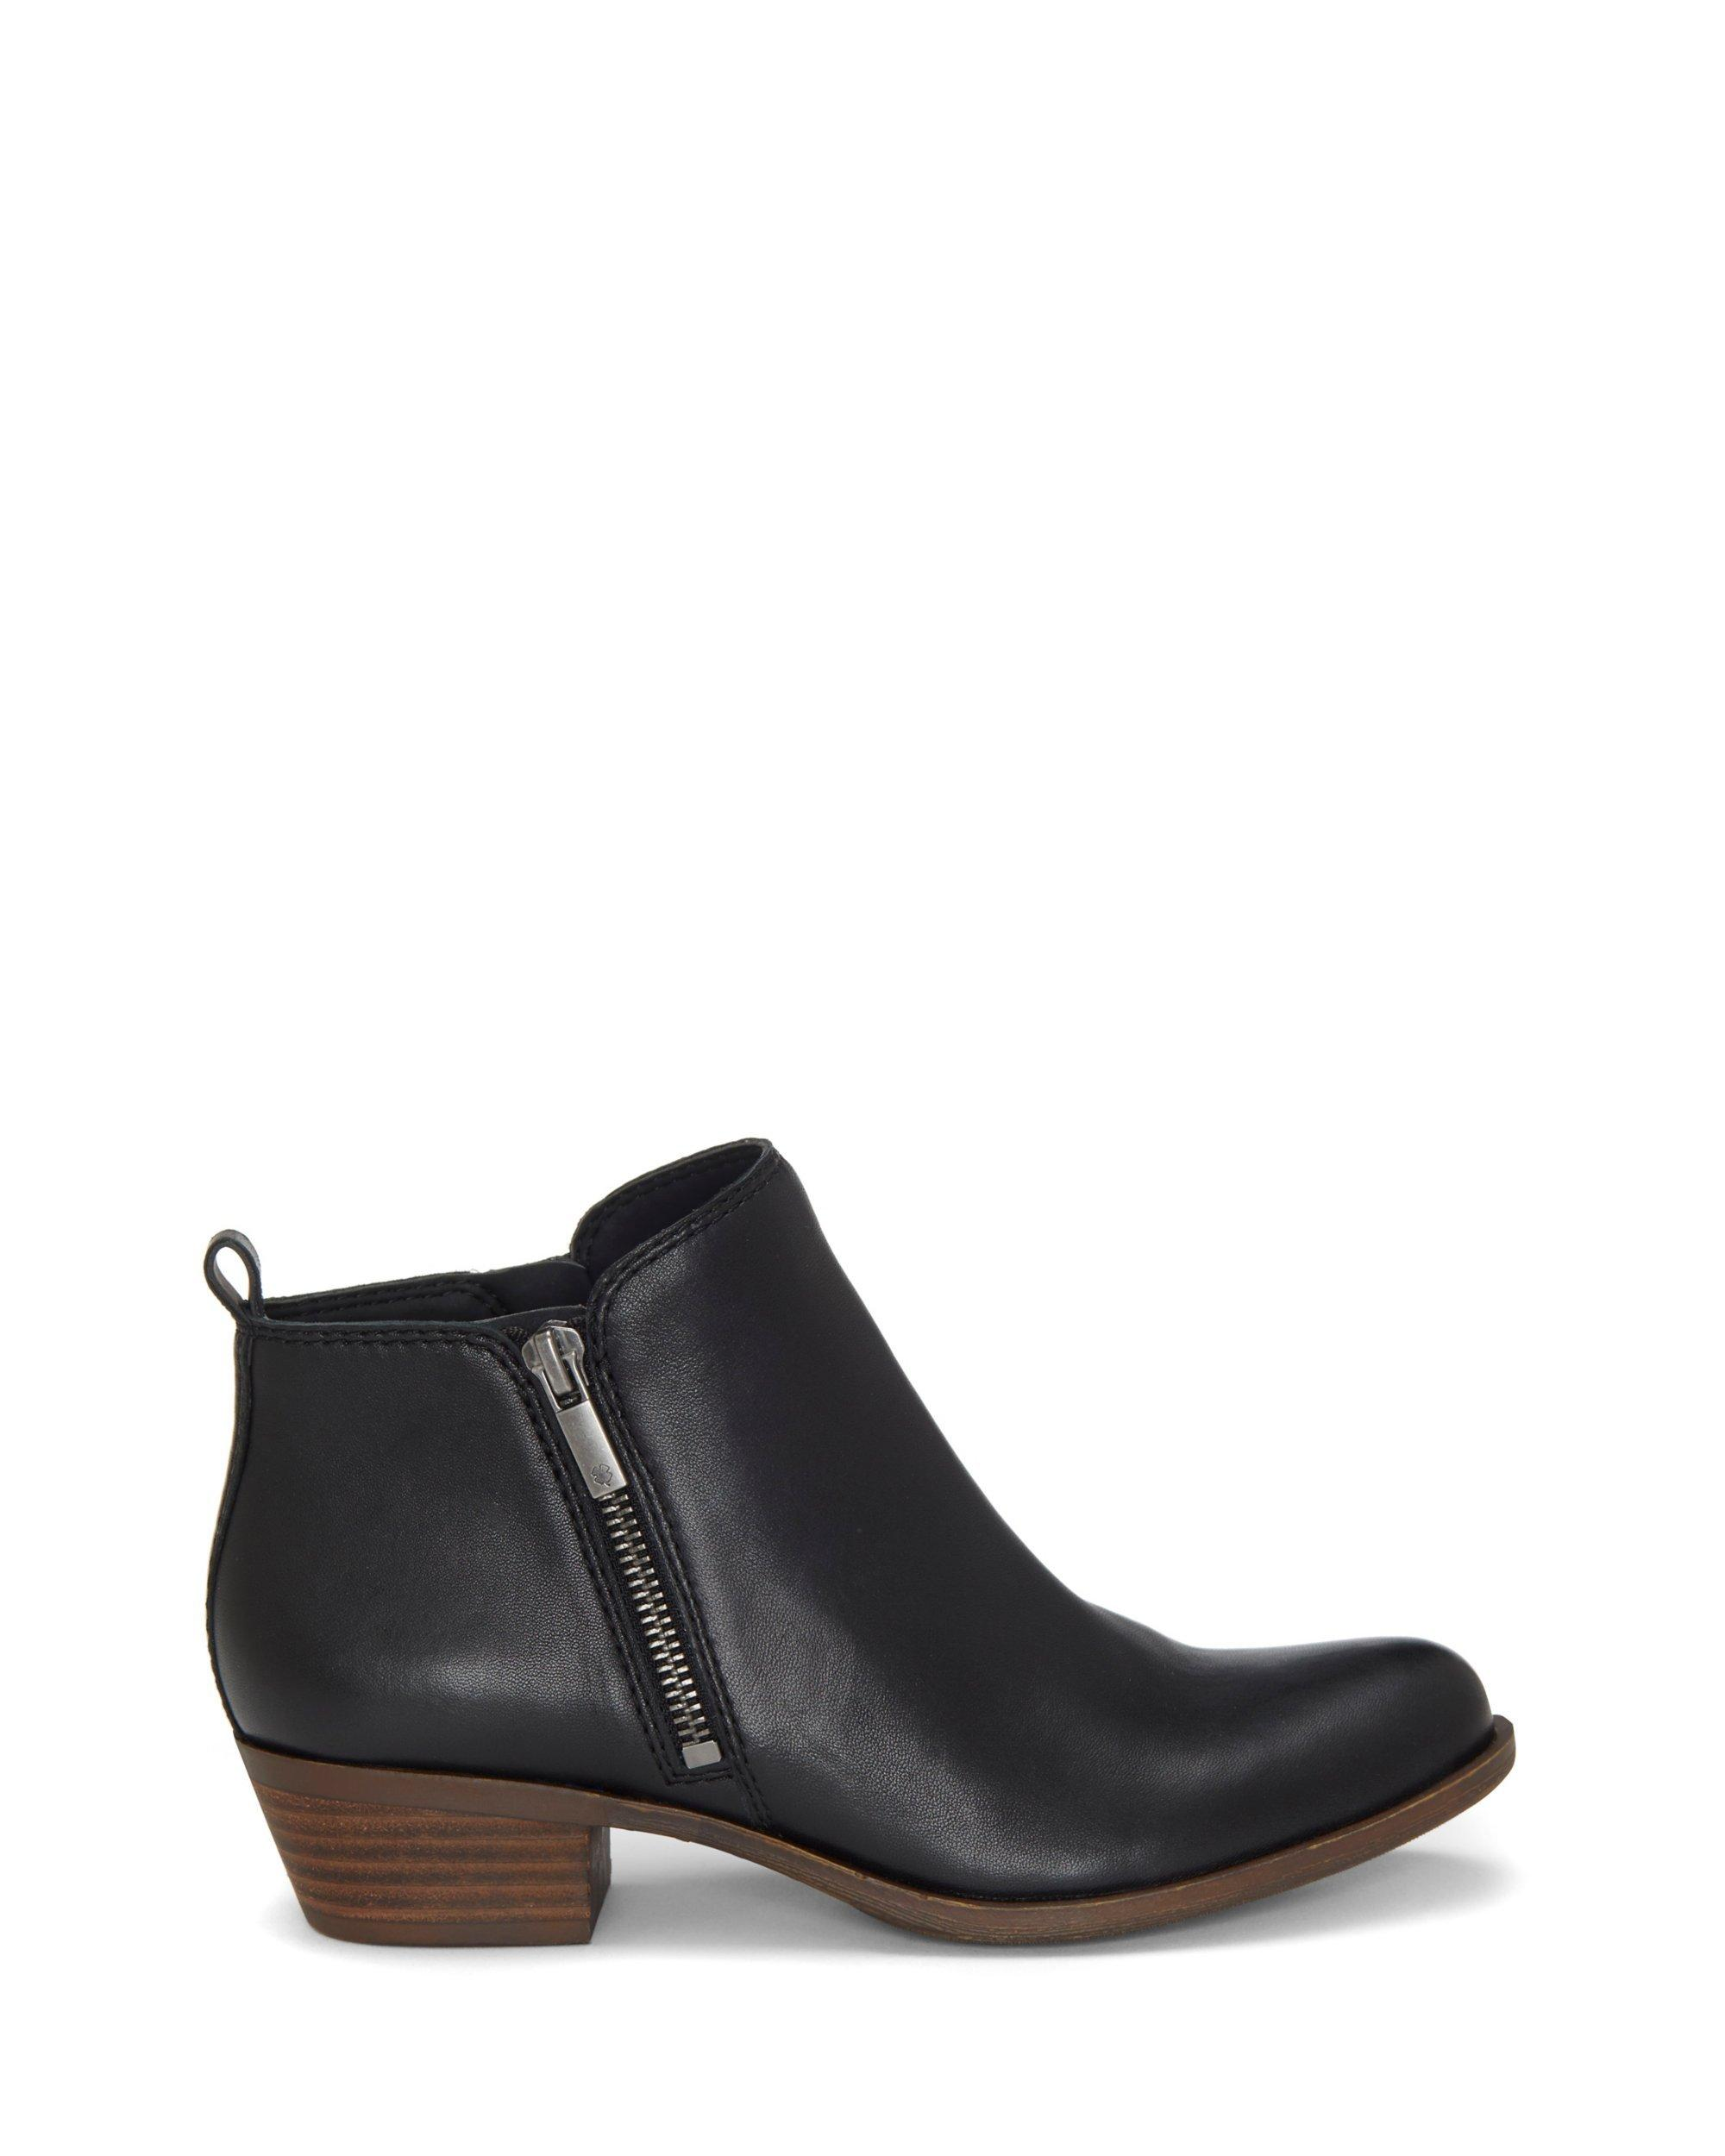 BASEL LEATHER FLAT BOOTIE, image 2